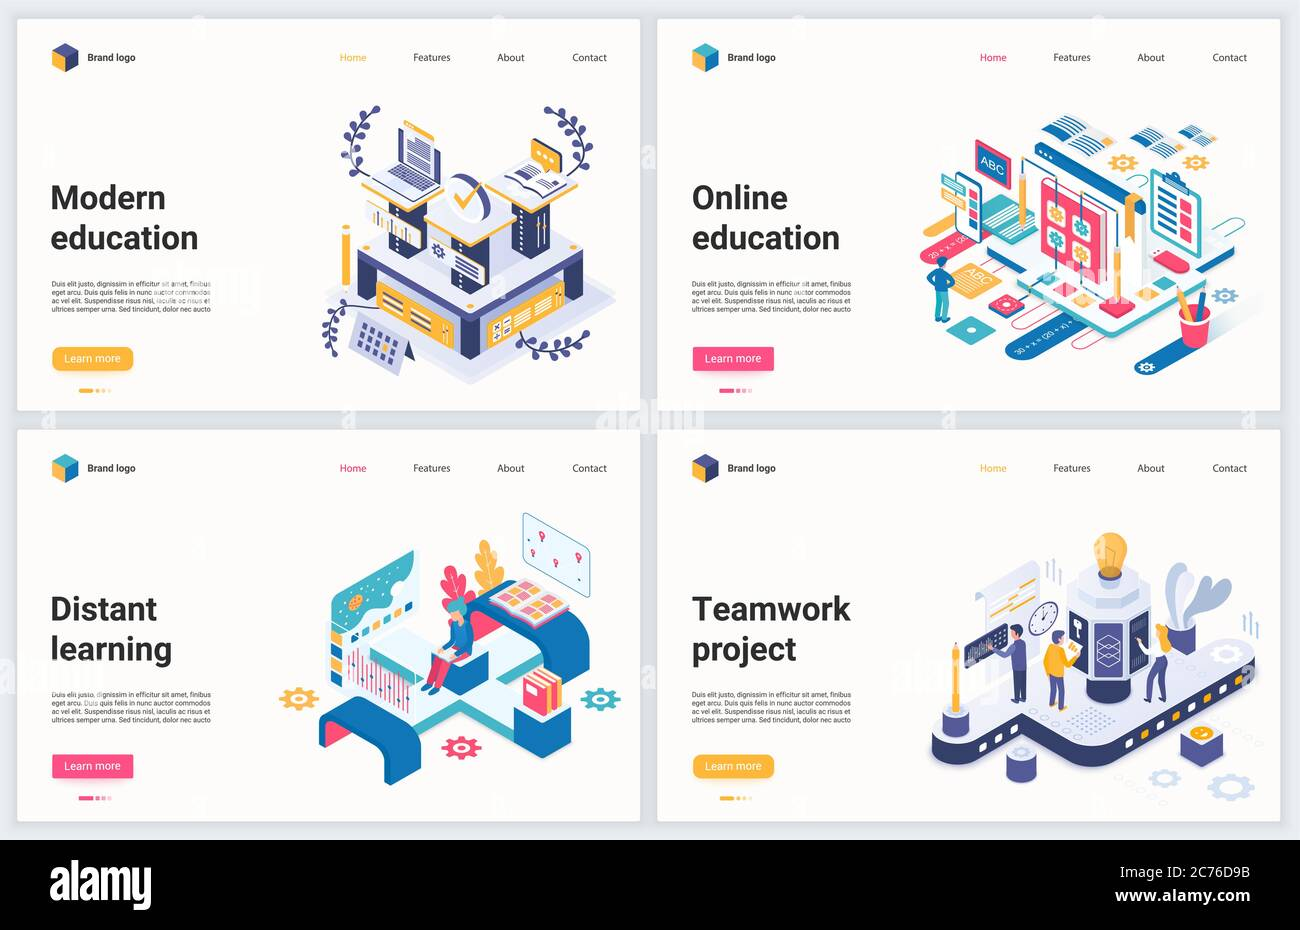 Isometric Distance Education Technology Vector Illustration Creative Modern Concept Banner Set Website Design With Cartoon 3d Online Training Of Business Team Educational Project And Distant Course Stock Vector Image Art